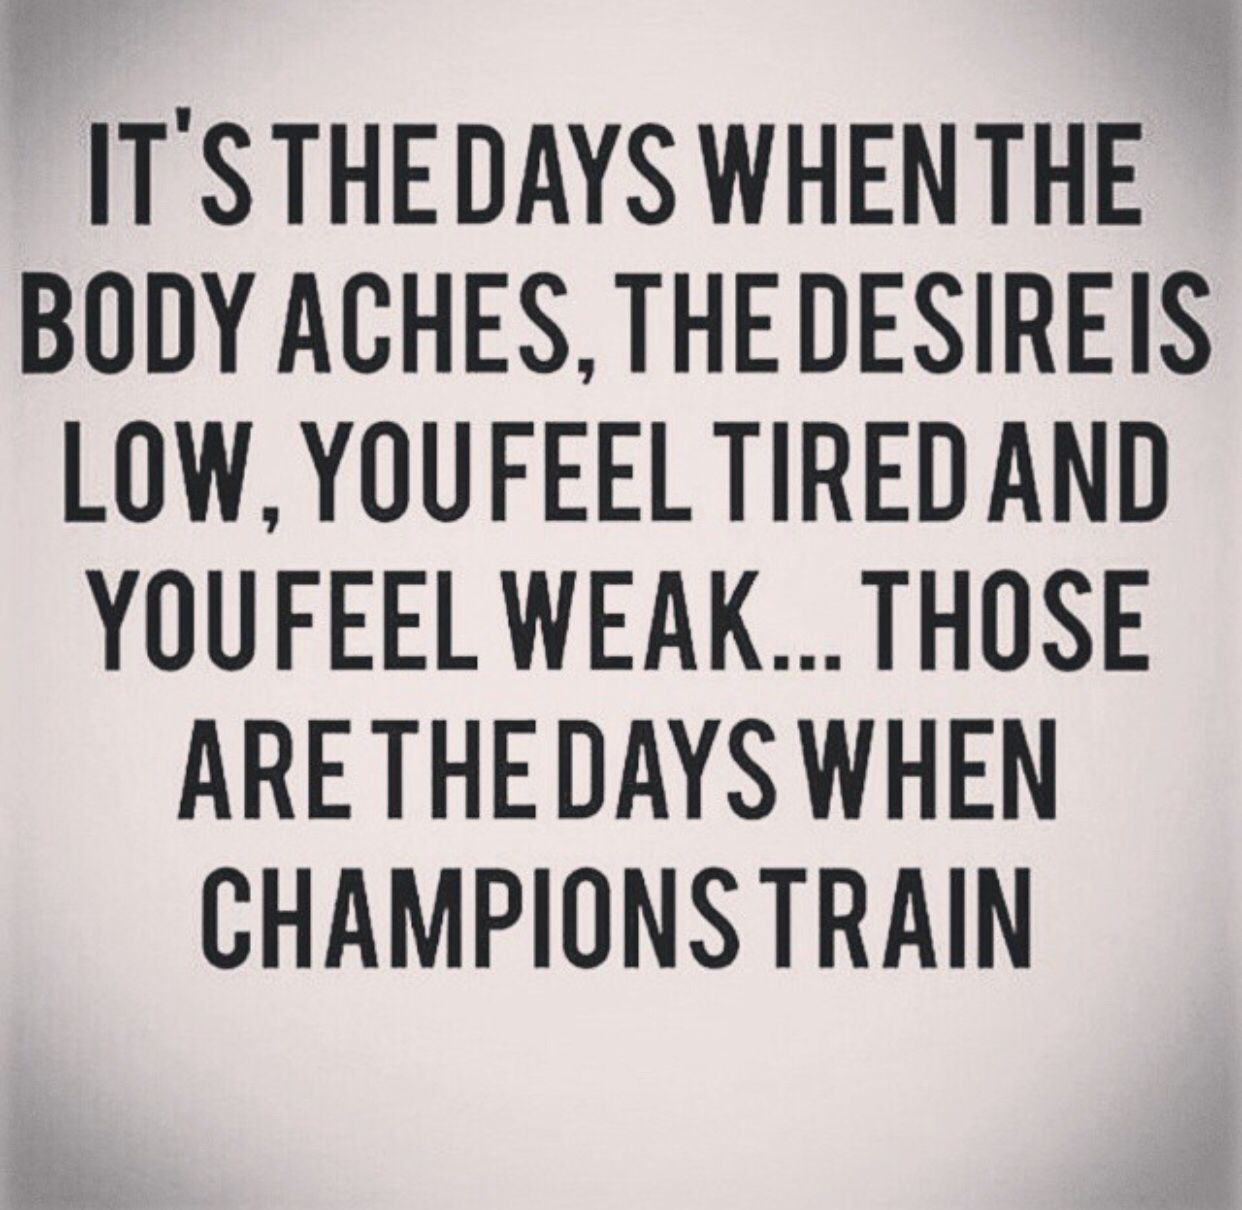 Train On The Good Days Train Even Harder On The Bad Days